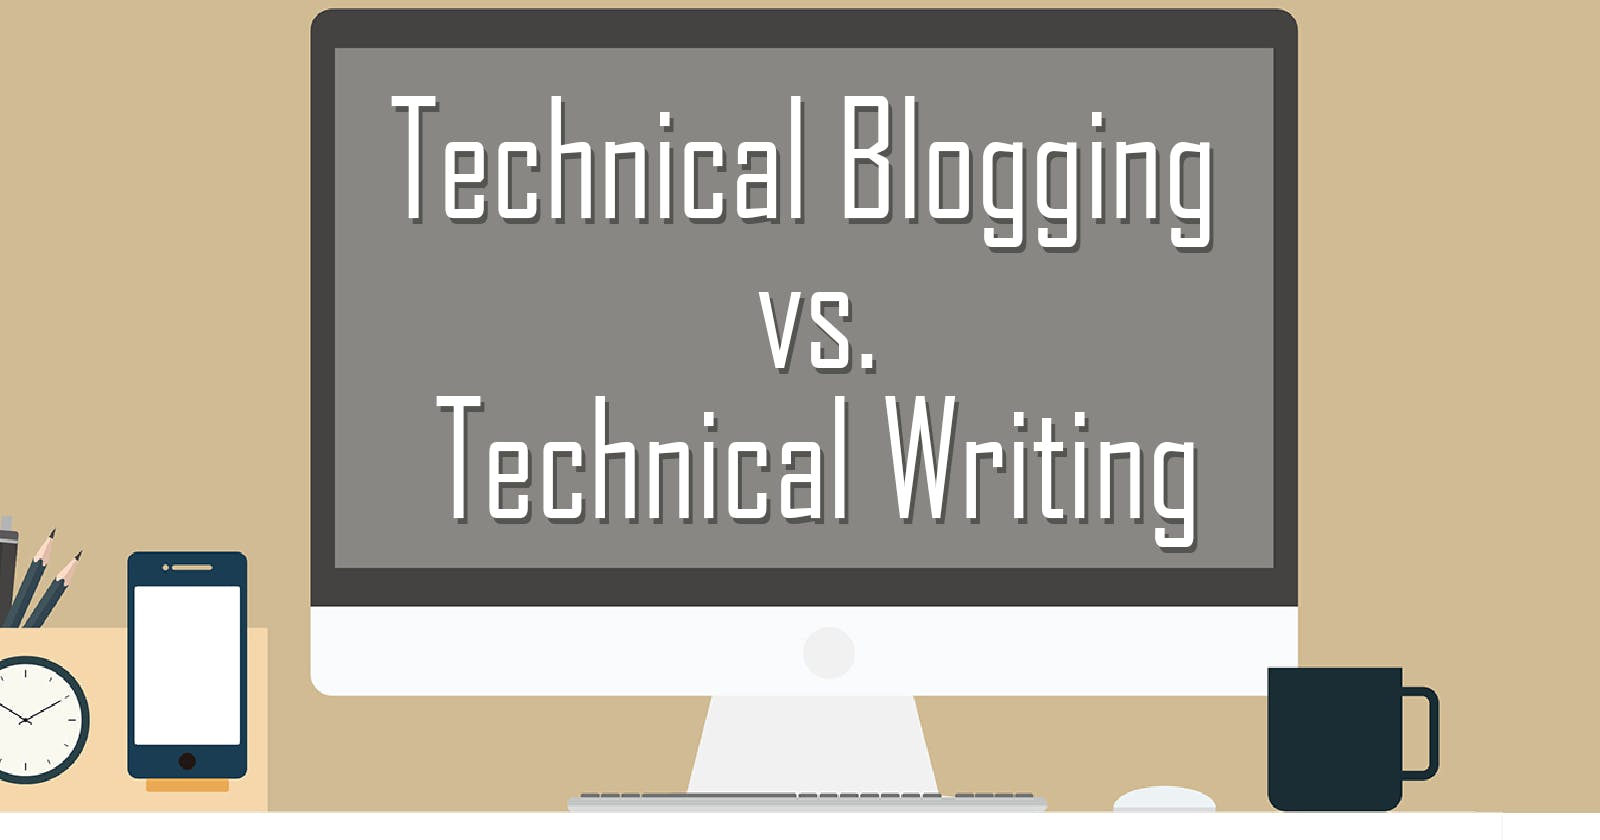 What You Need To Know About Technical Writing vs Technical Blogging